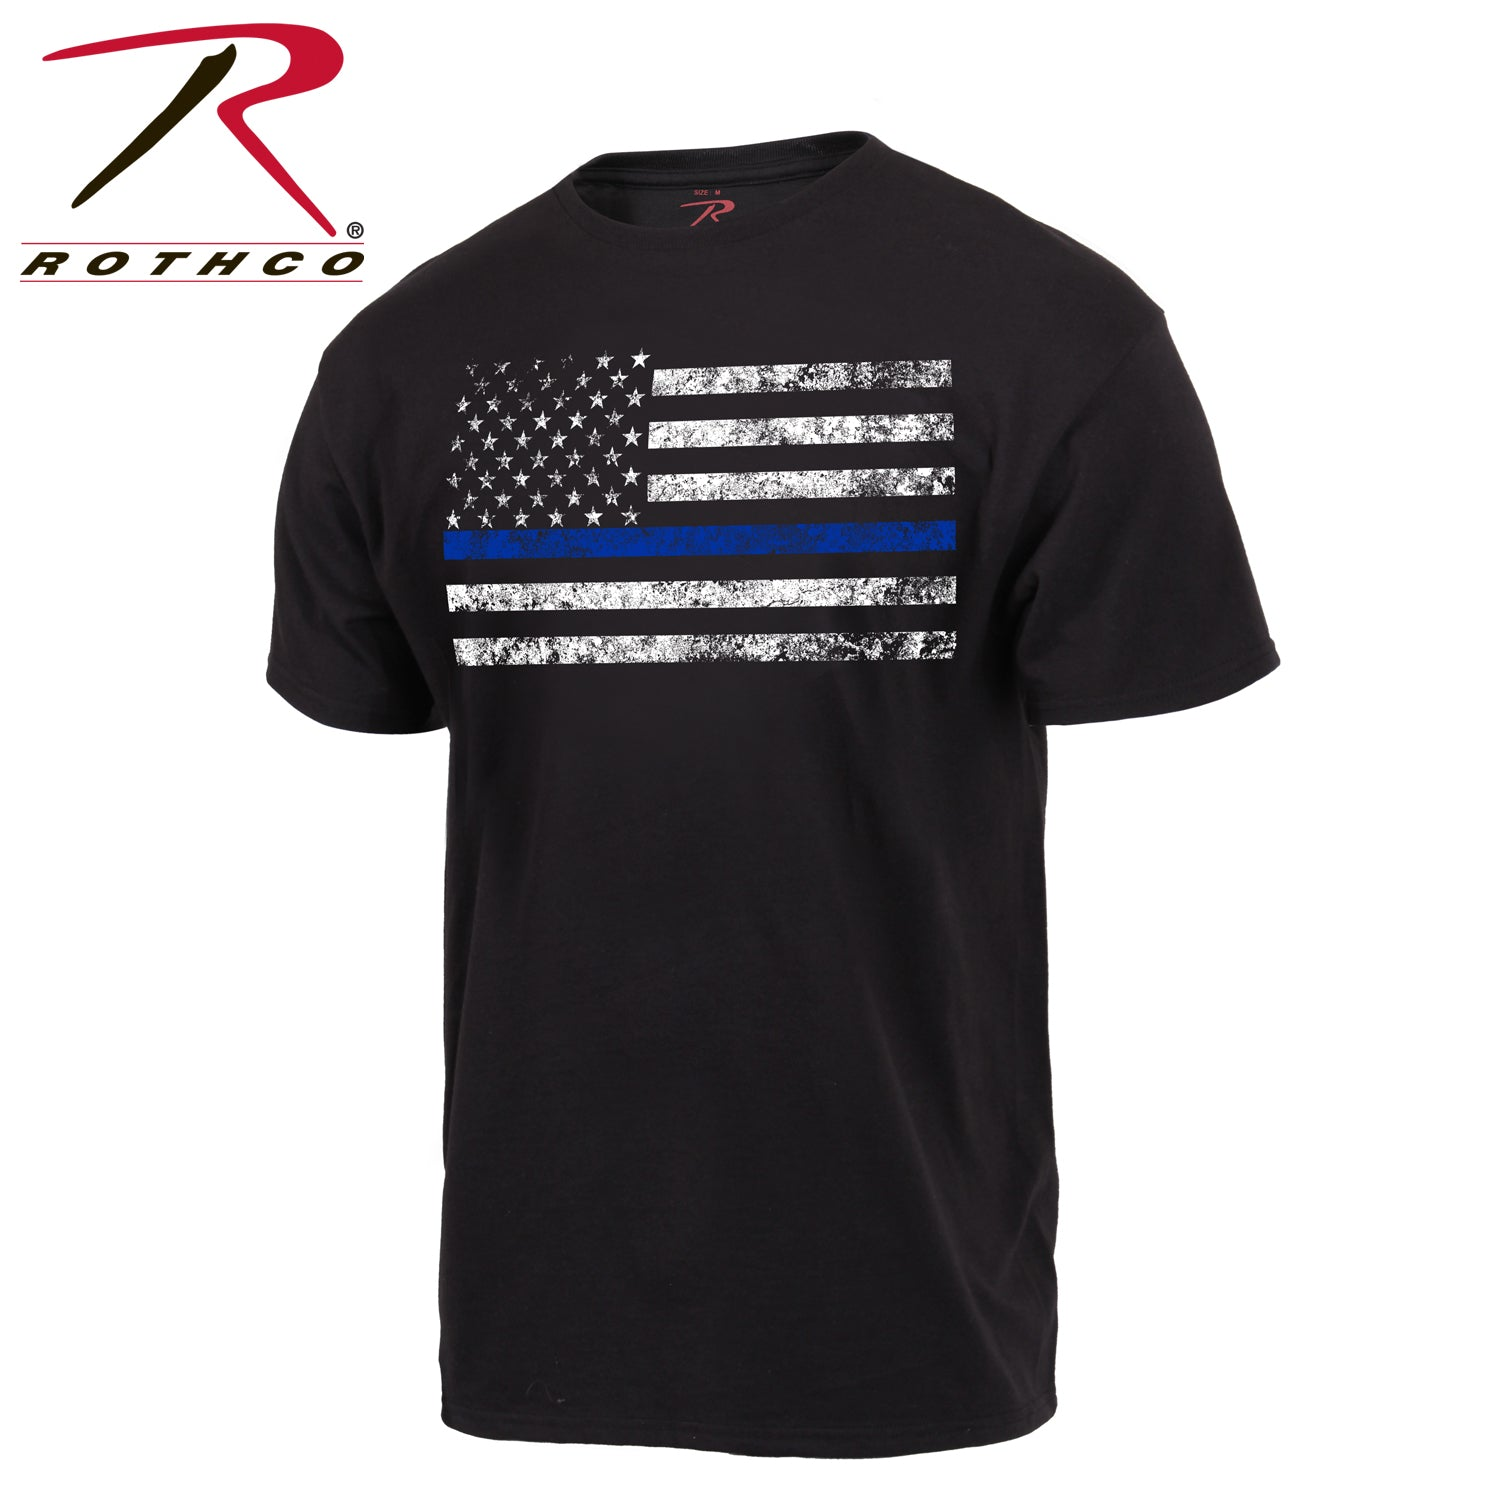 Rothco Thin Blue Line T-Shirt - Red Diamond Uniform & Police Supply